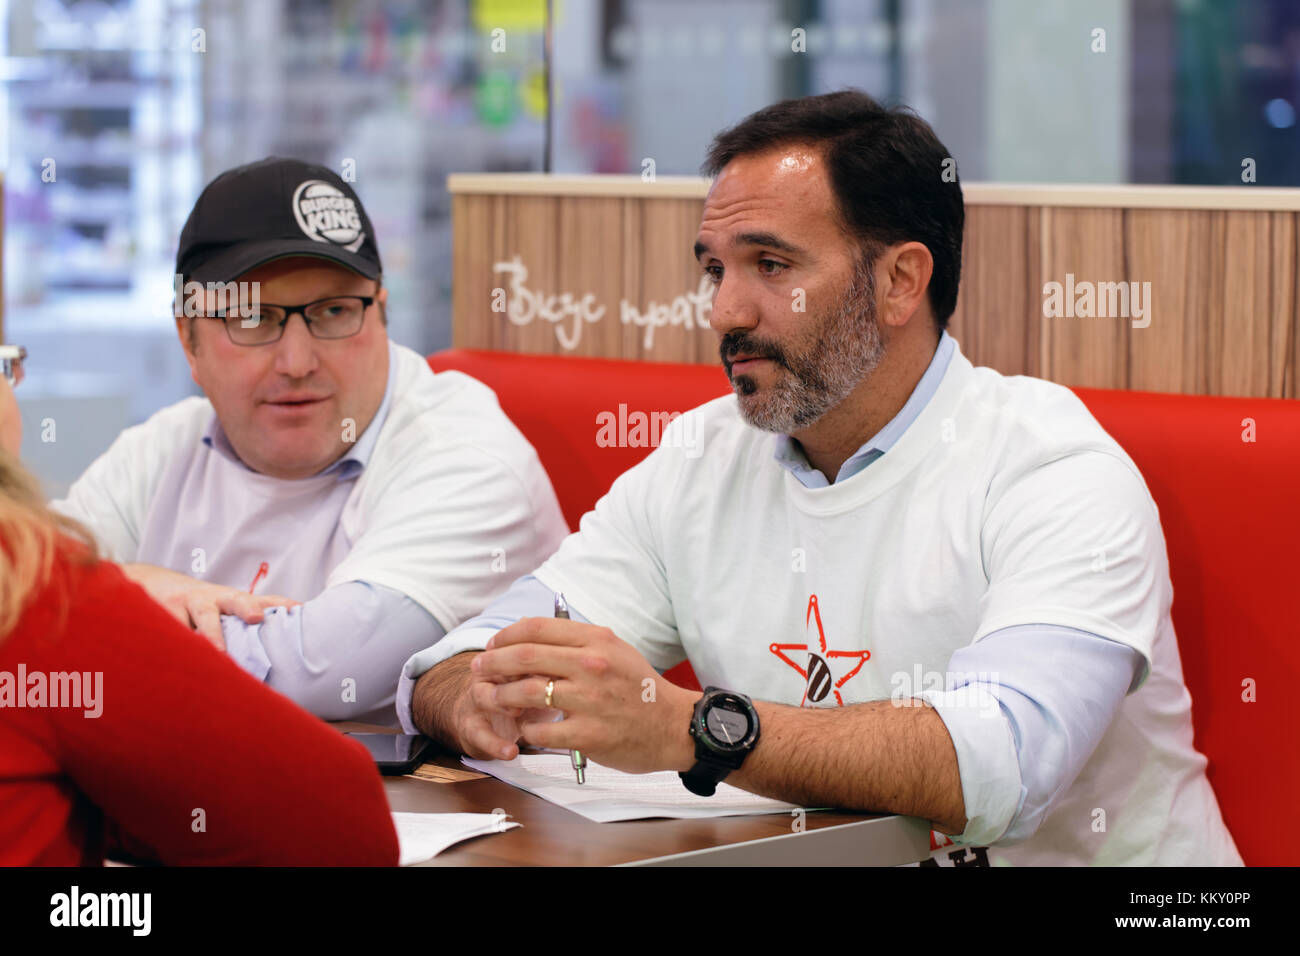 Press conference of Jose Cil (center), President of Burger King, and Dmitry Medovy, general director of Burger King - Stock Image